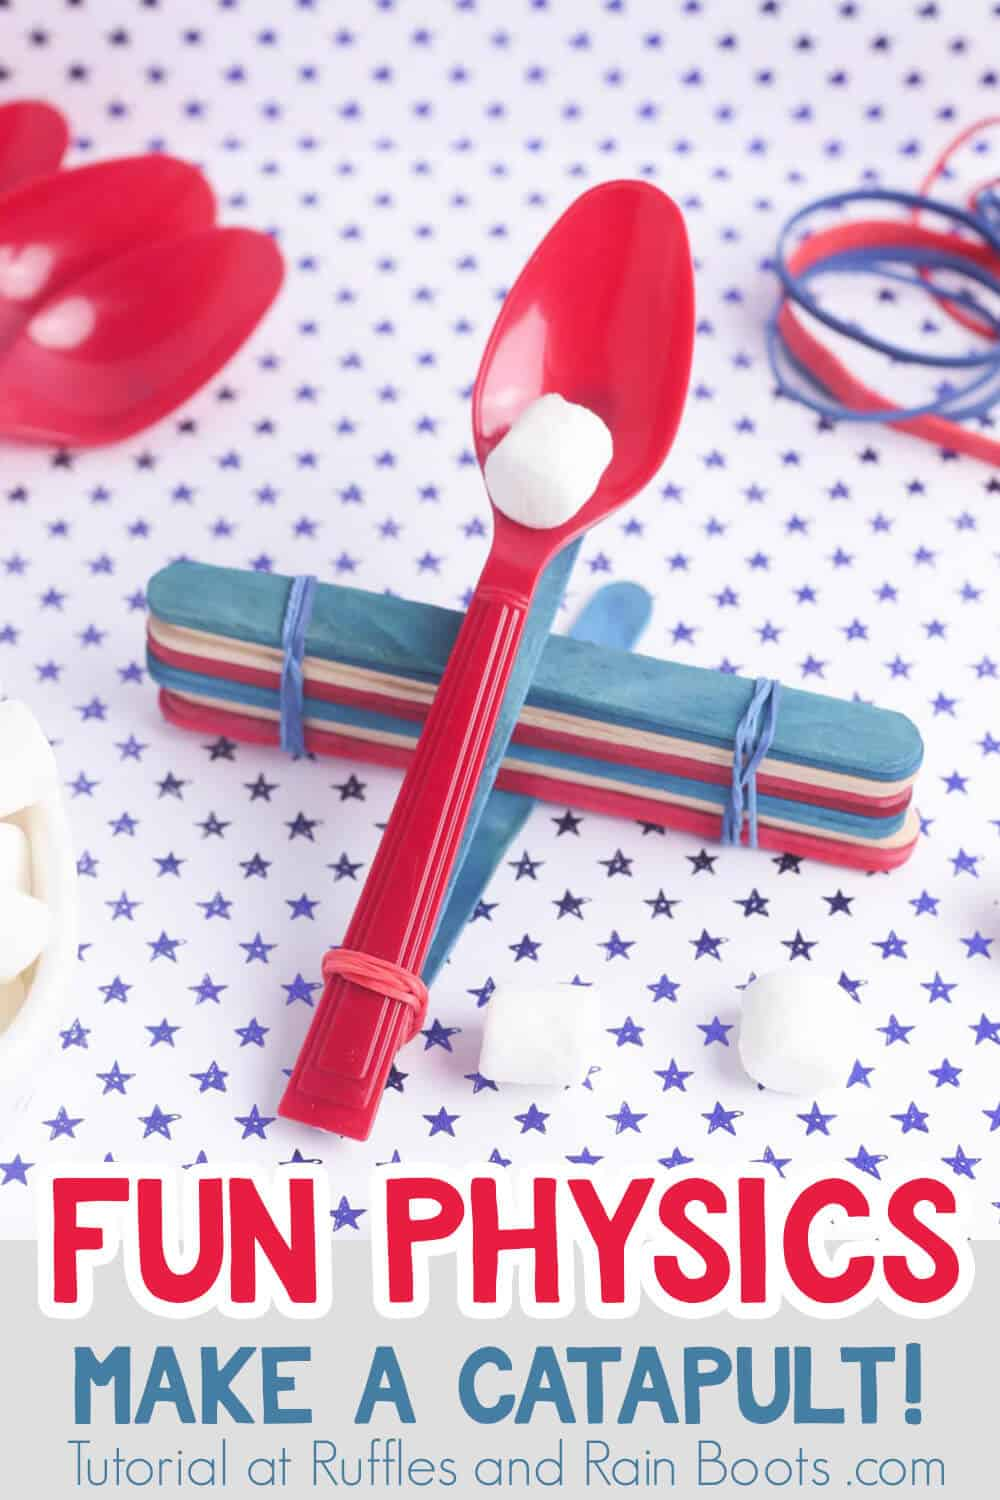 how do I make a catapult catapult project for kids on a blue and white polka dot background with text which reads fun physics make a catapult!